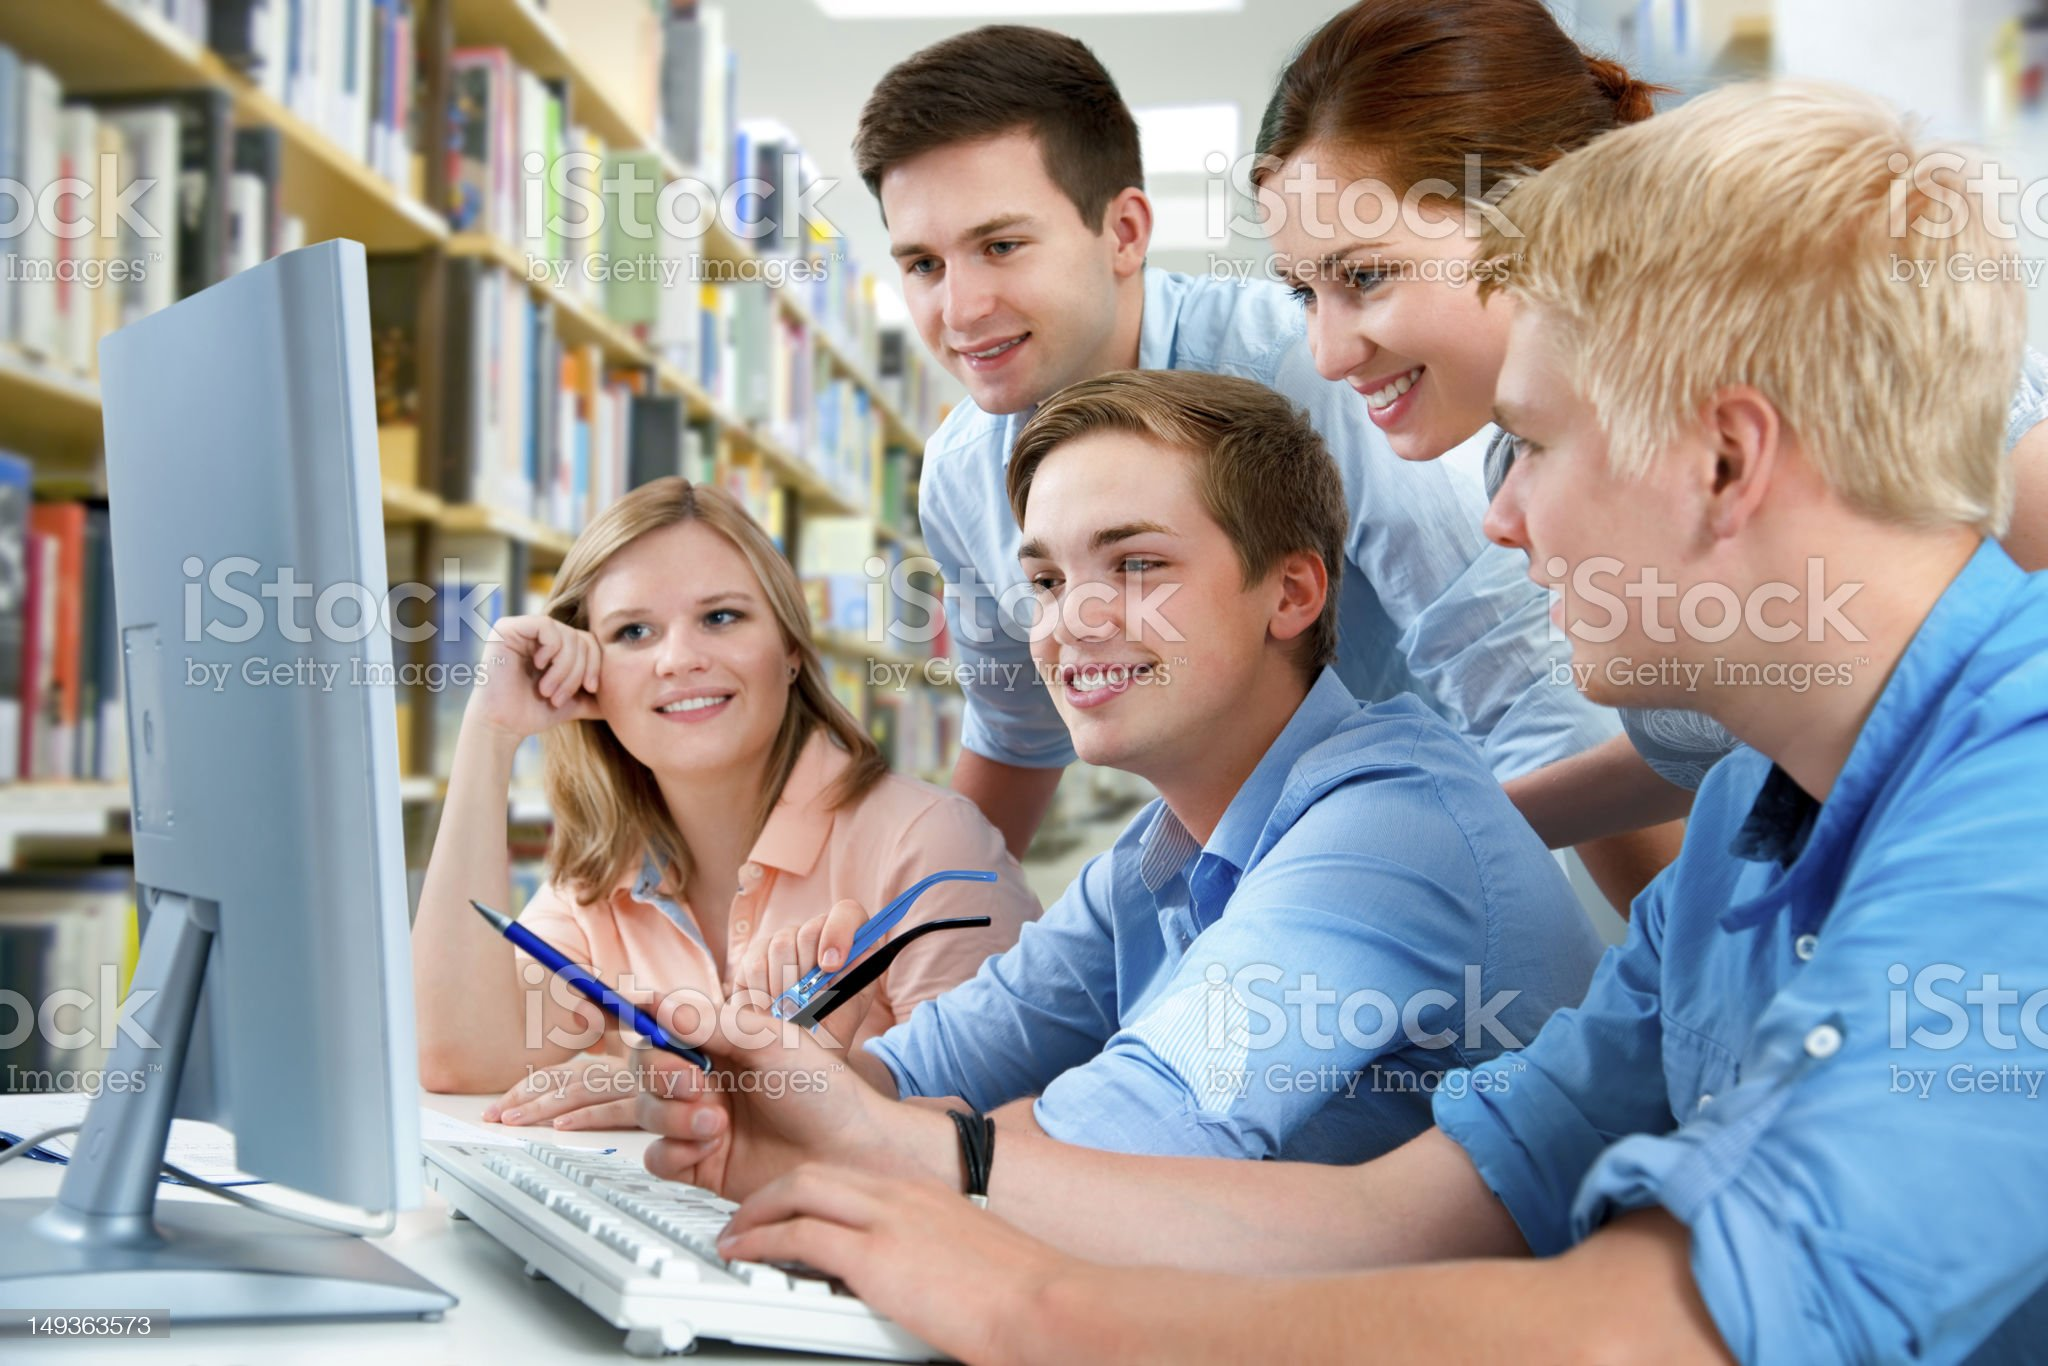 Group of male and female students studying together royalty-free stock photo